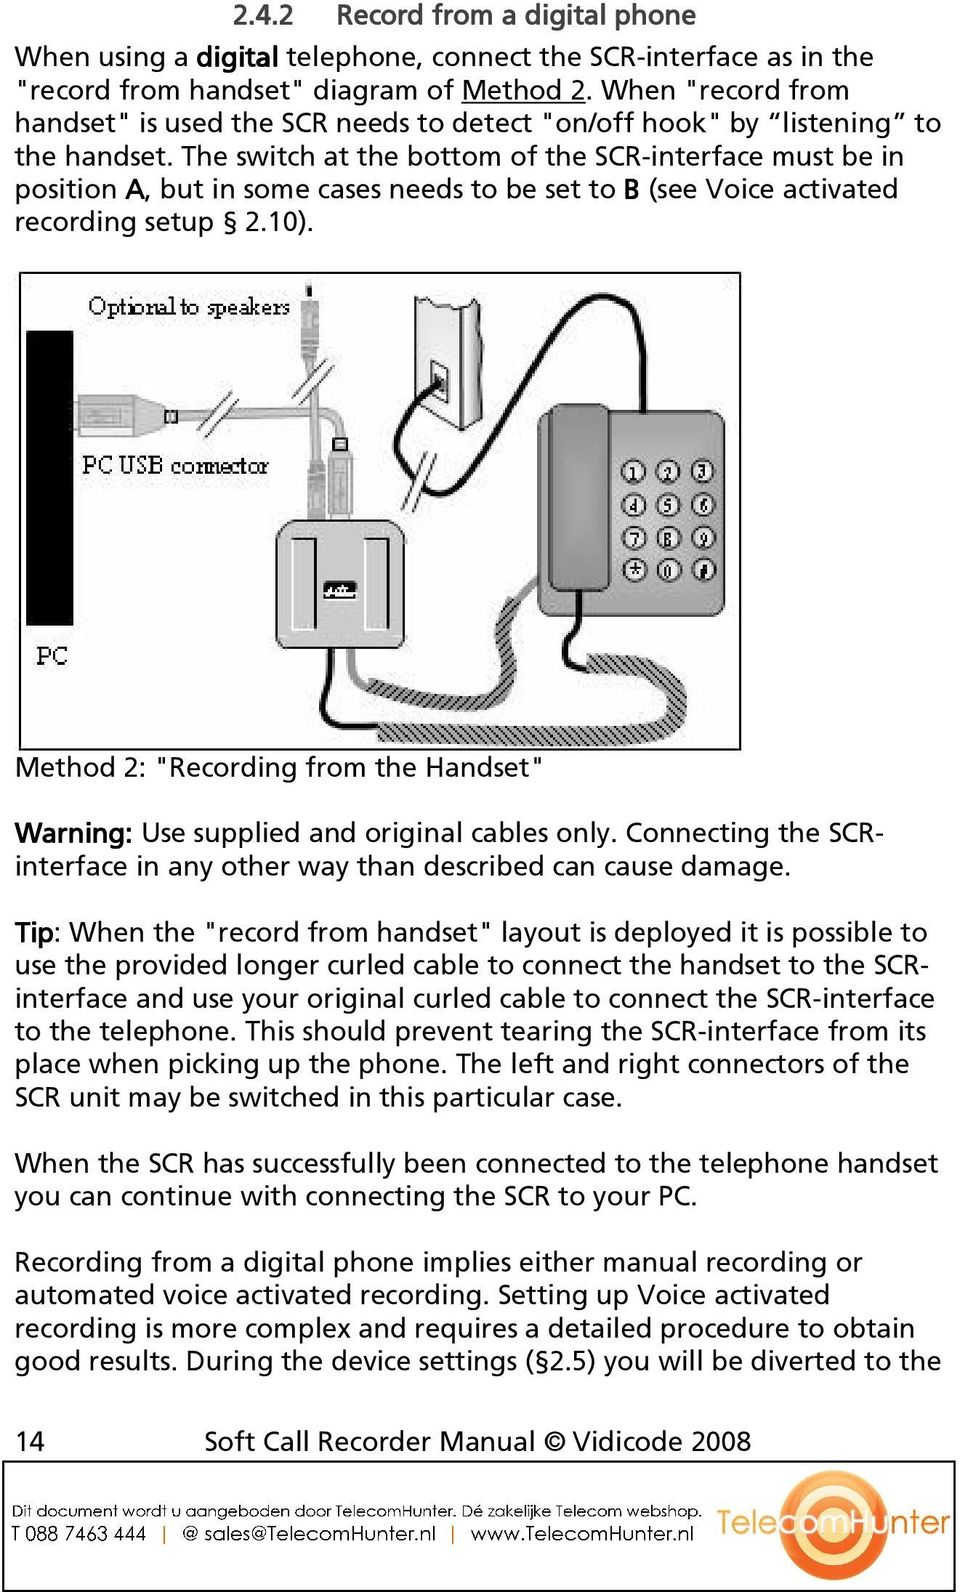 The switch at the bottom of the SCR-interface must be in position A, but in some cases needs to be set to B (see Voice activated recording setup 2.10).